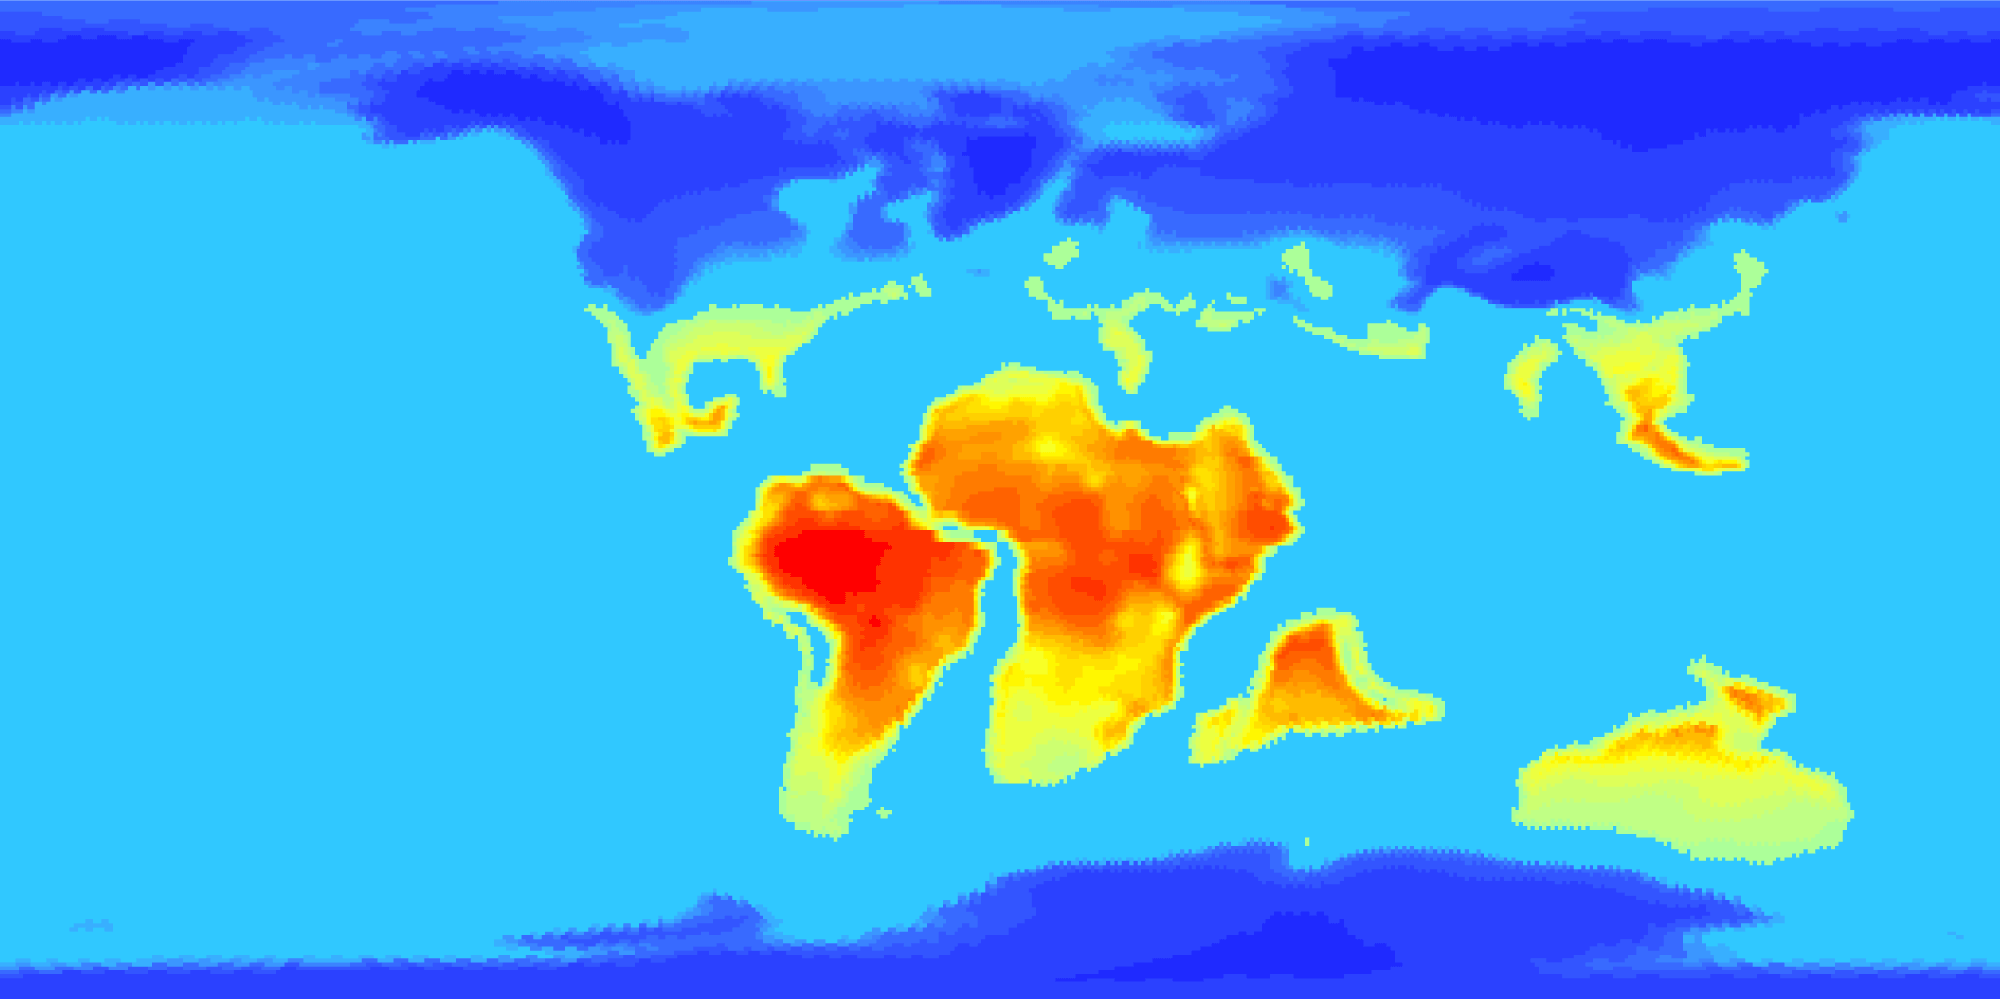 PaleoClimate™ sample output image